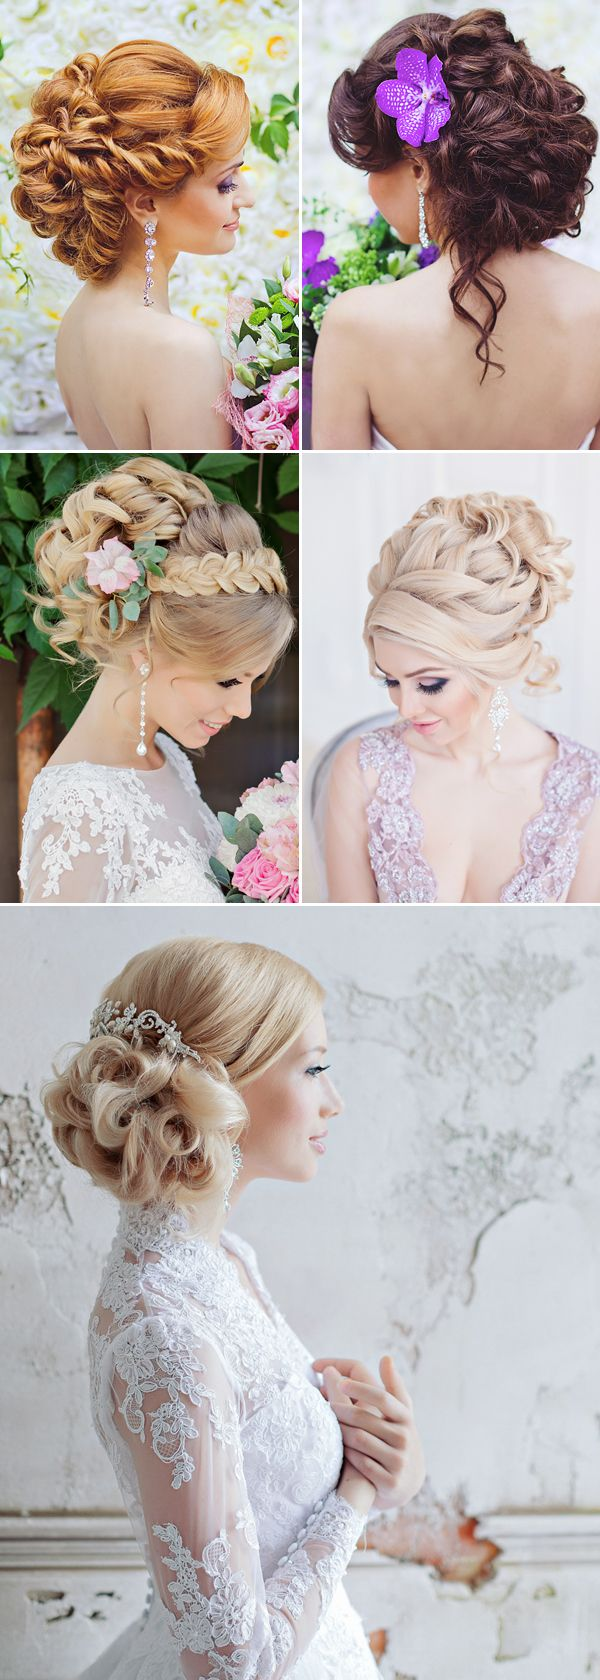 23 Seriously Creative Bridal Hairstyles Like No Other | Bridal ...